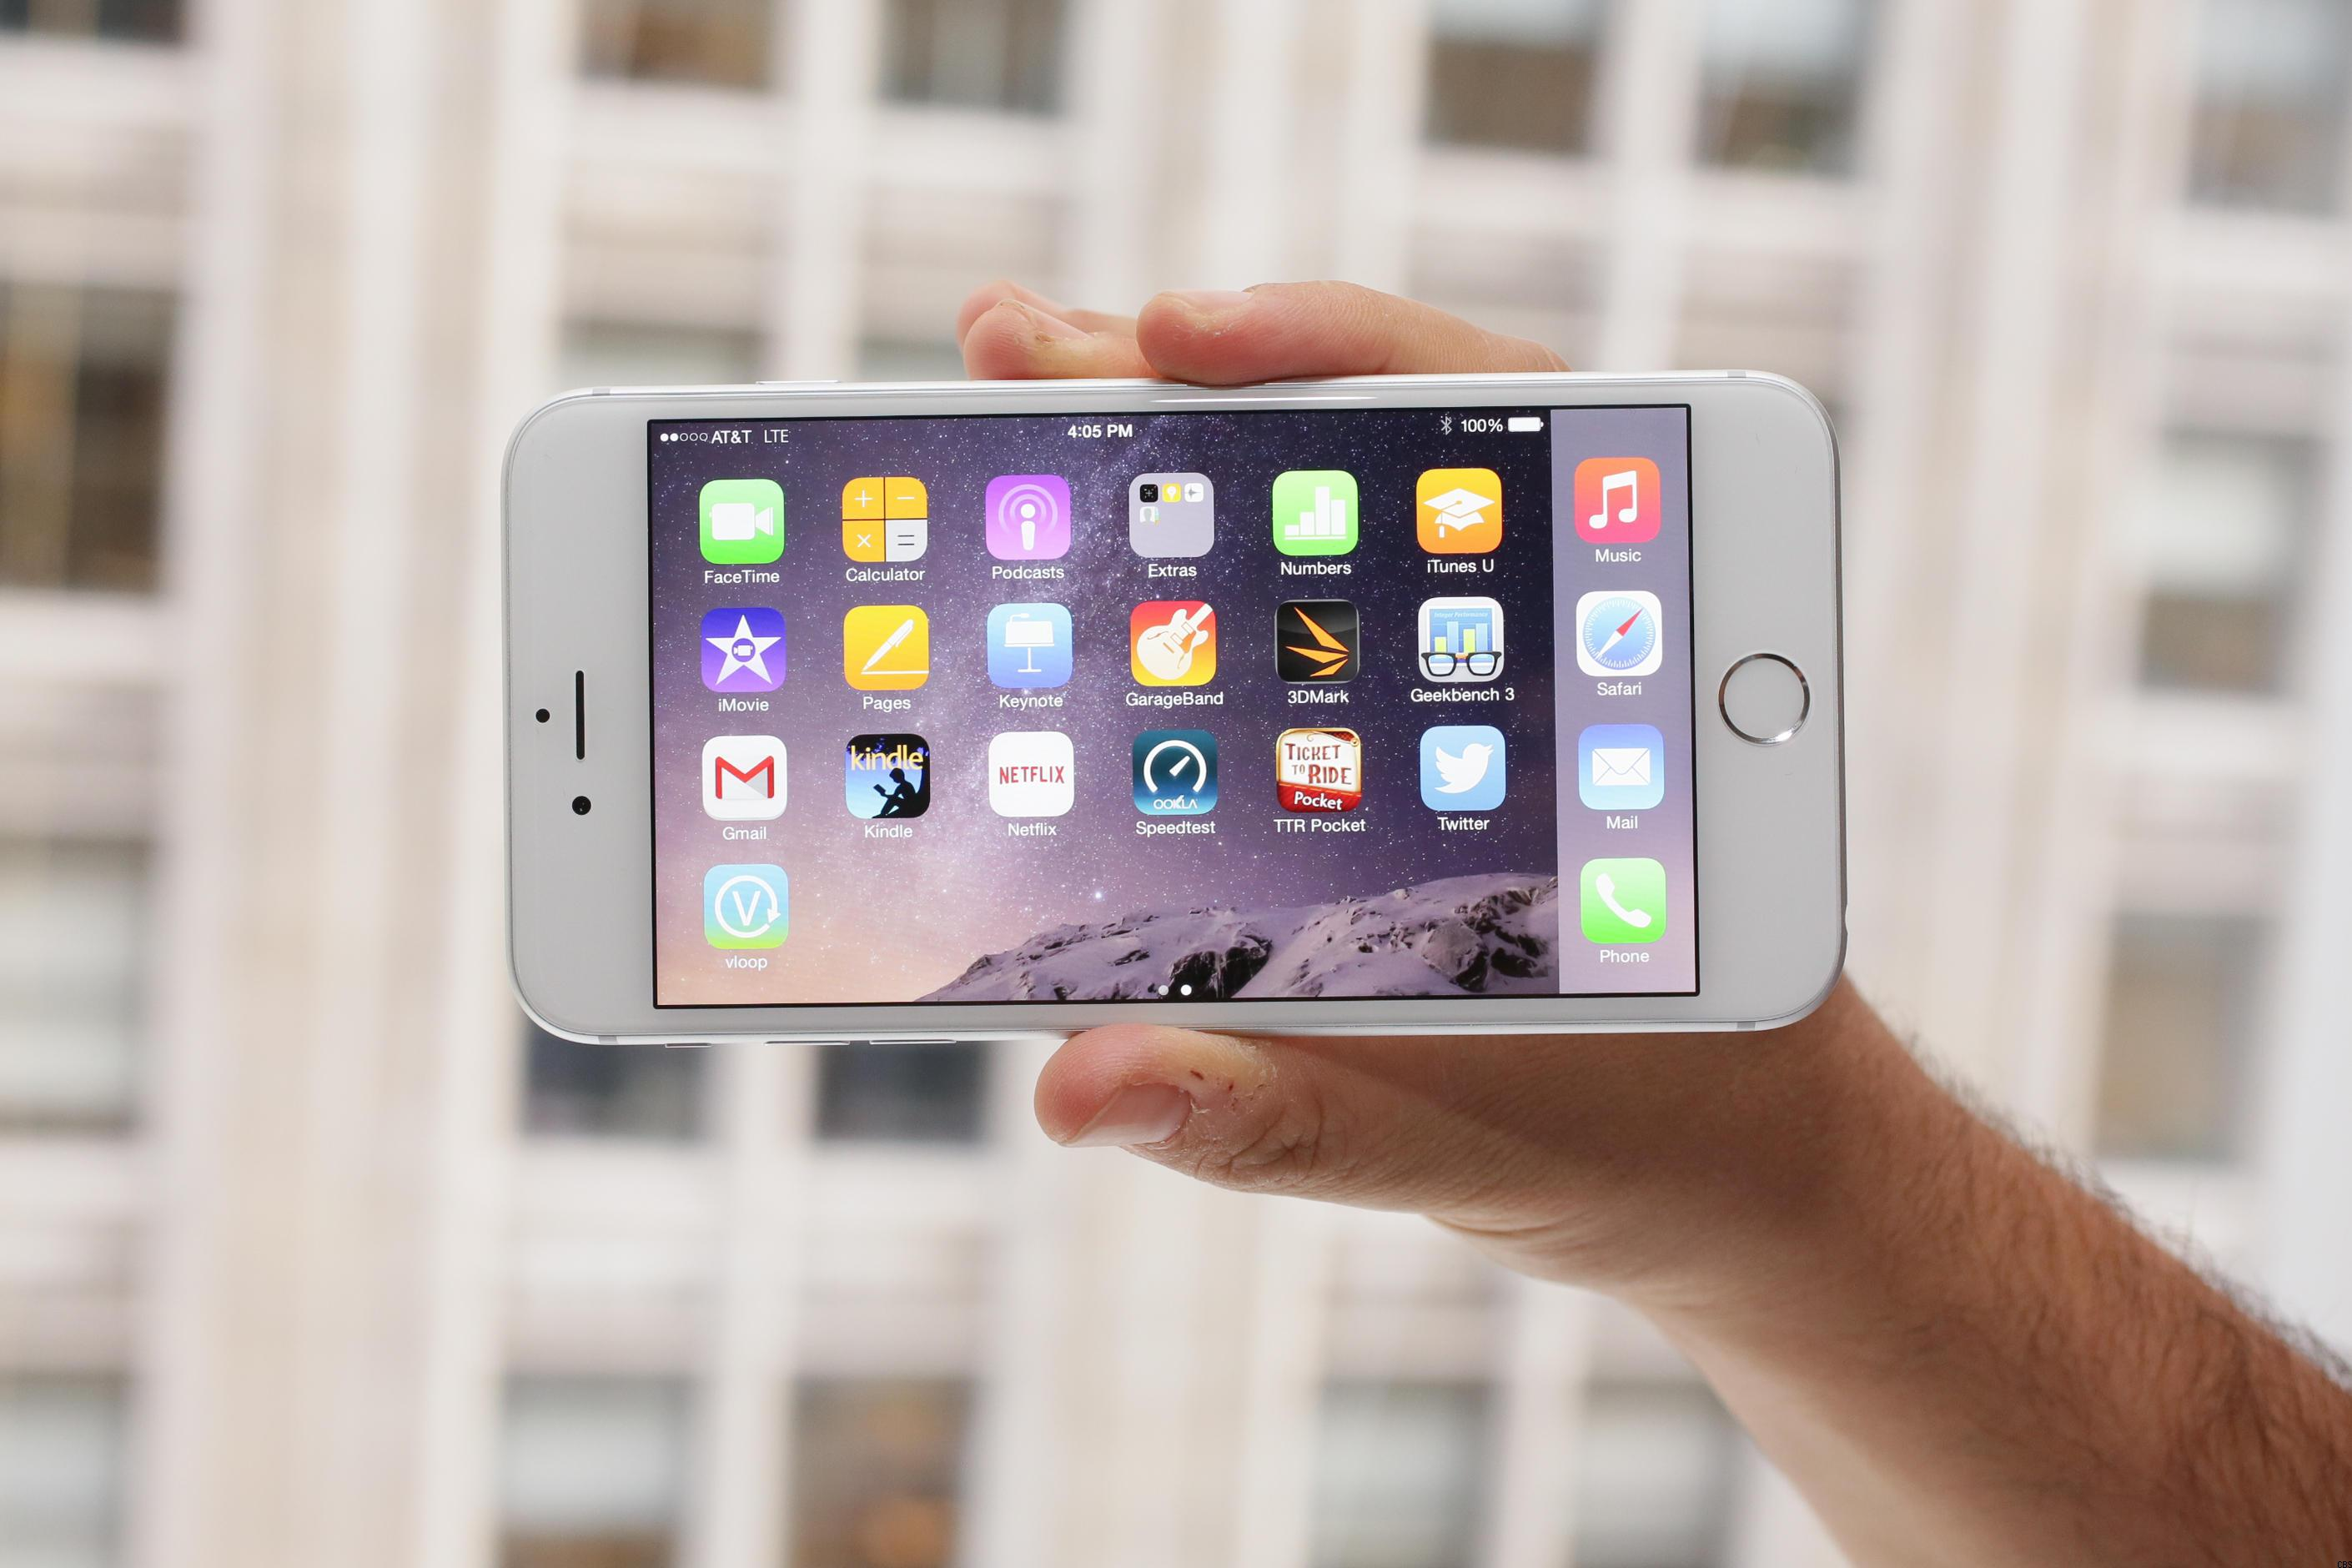 iPhone 6 Plus leads phablet sales in US